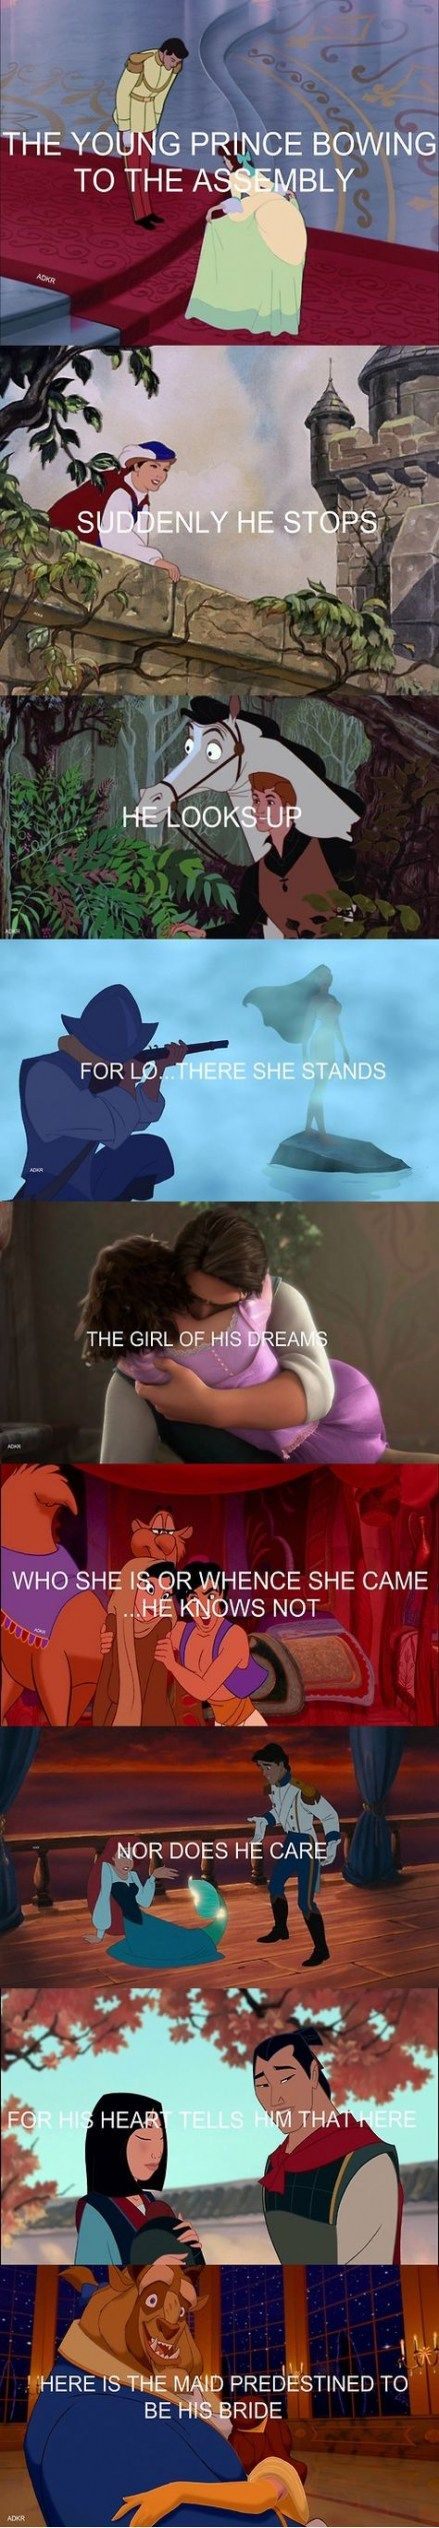 Quotes disney movies beauty 57+ Ideas #beauty #quotes